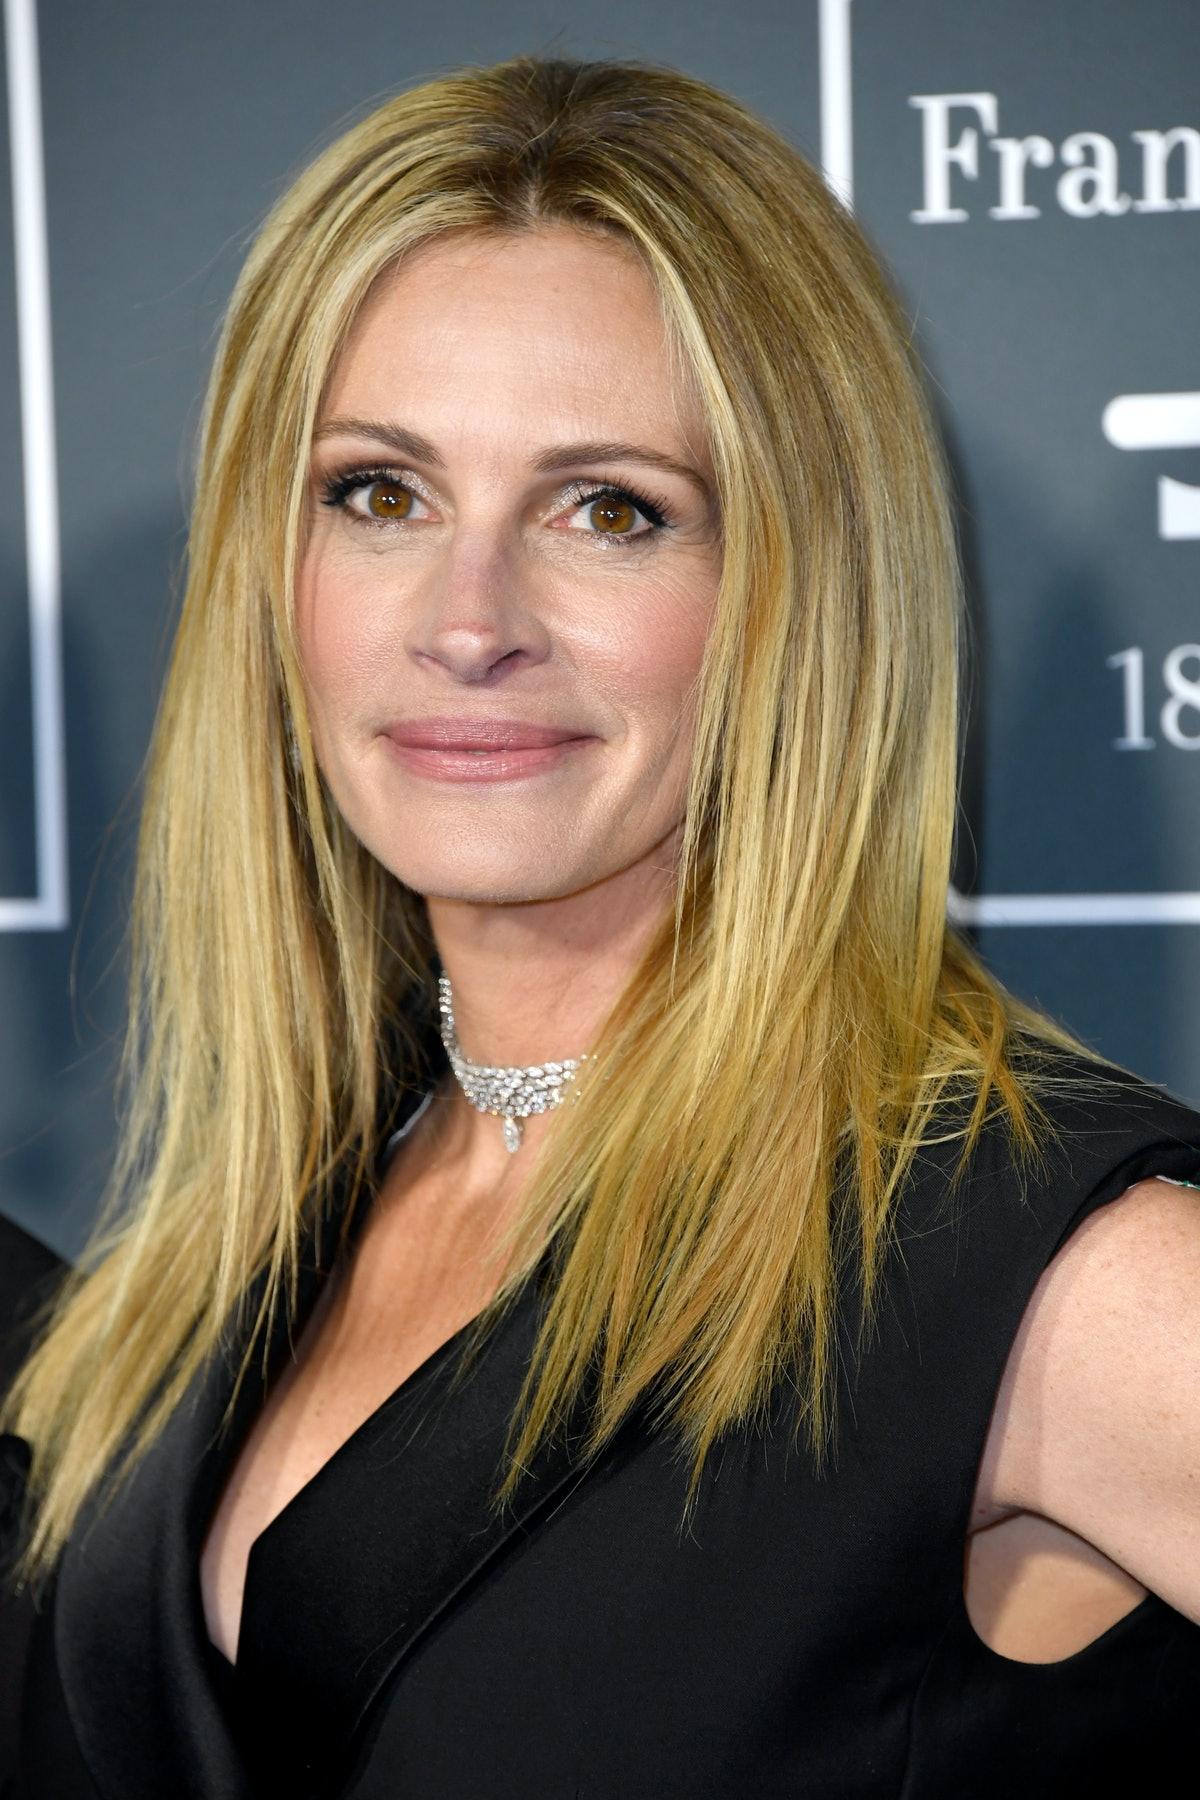 Julia Roberts' Thoughts On The College Admissions Scandal Will Have You Nodding Your Head In Agreement